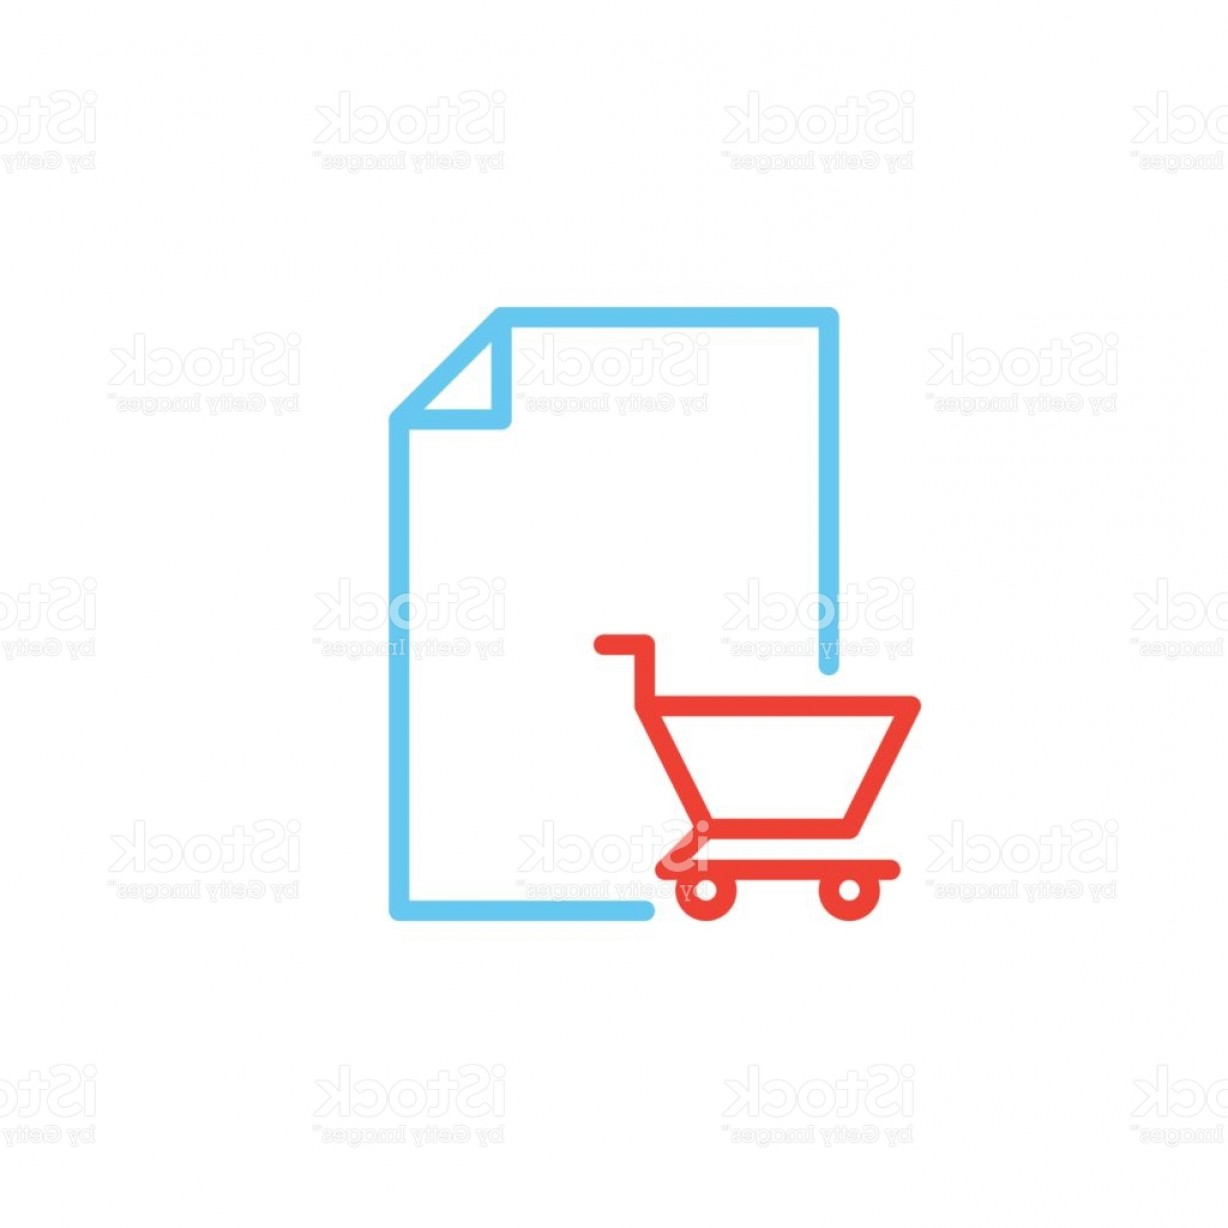 Purchase Vector Art: Purchase Order Line Icon Outline Vector Sign Linear Colorful Pictogram Isolated On Gm